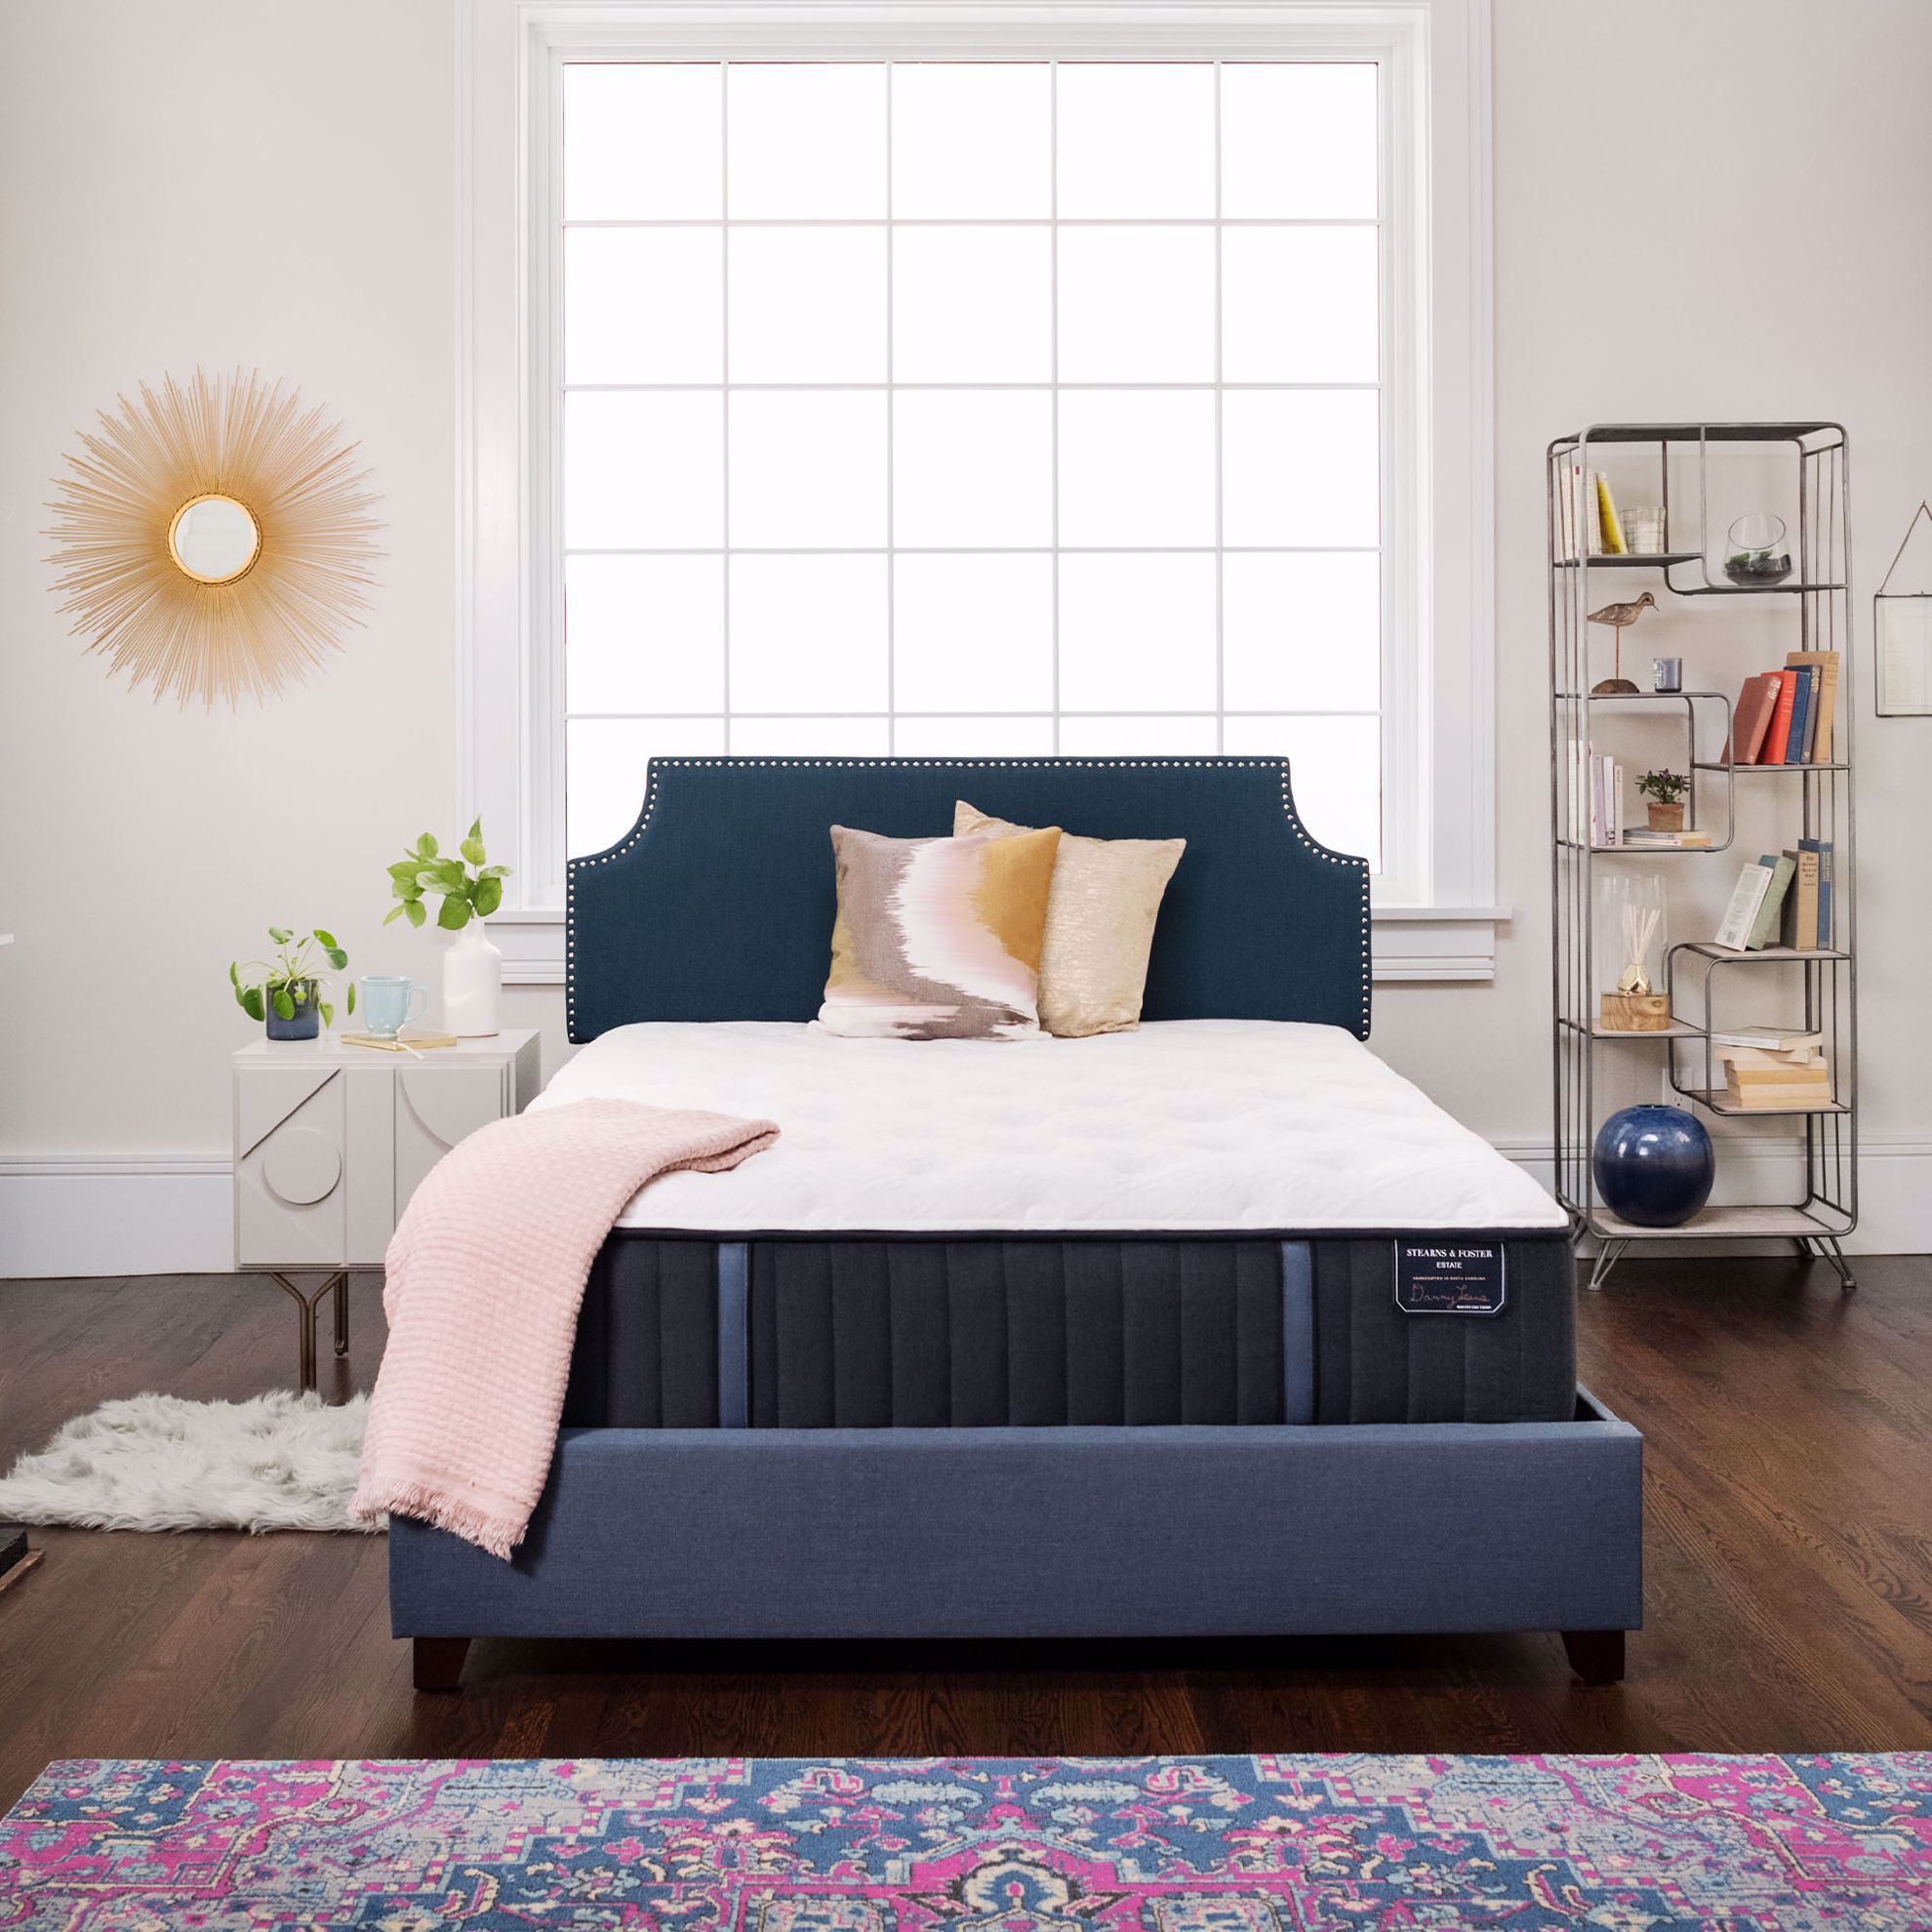 Picture of Stearns and Foster Hurston Luxury Cushion Firm Queen Mattress